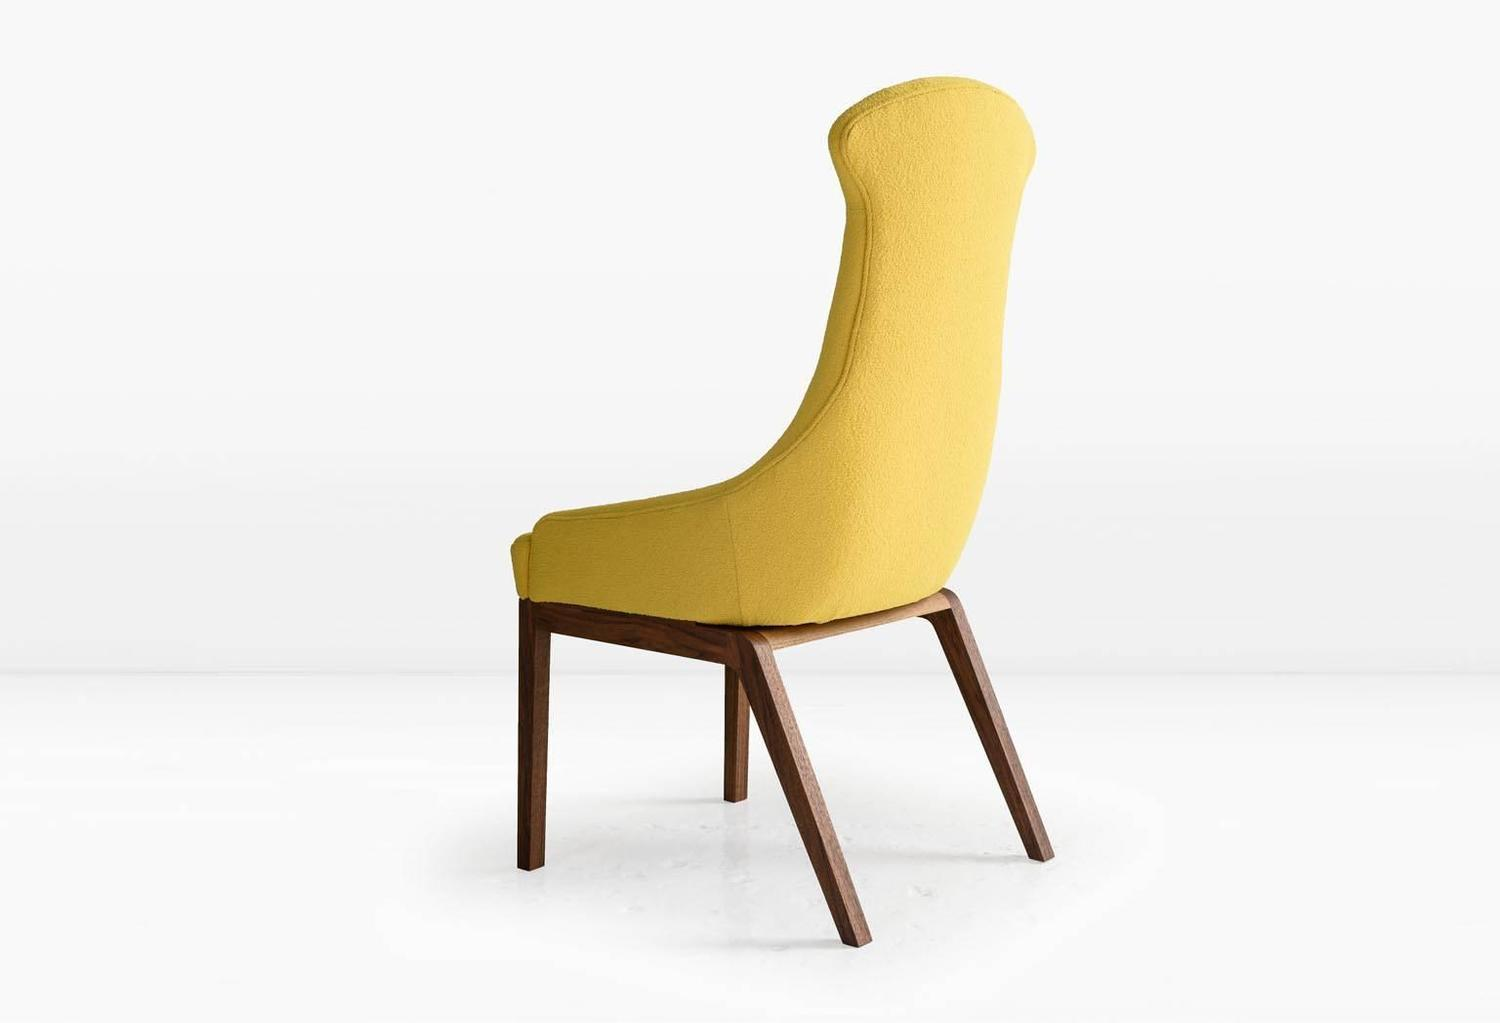 Evander dining chair in yellow wool boucl 233 or leather with solid